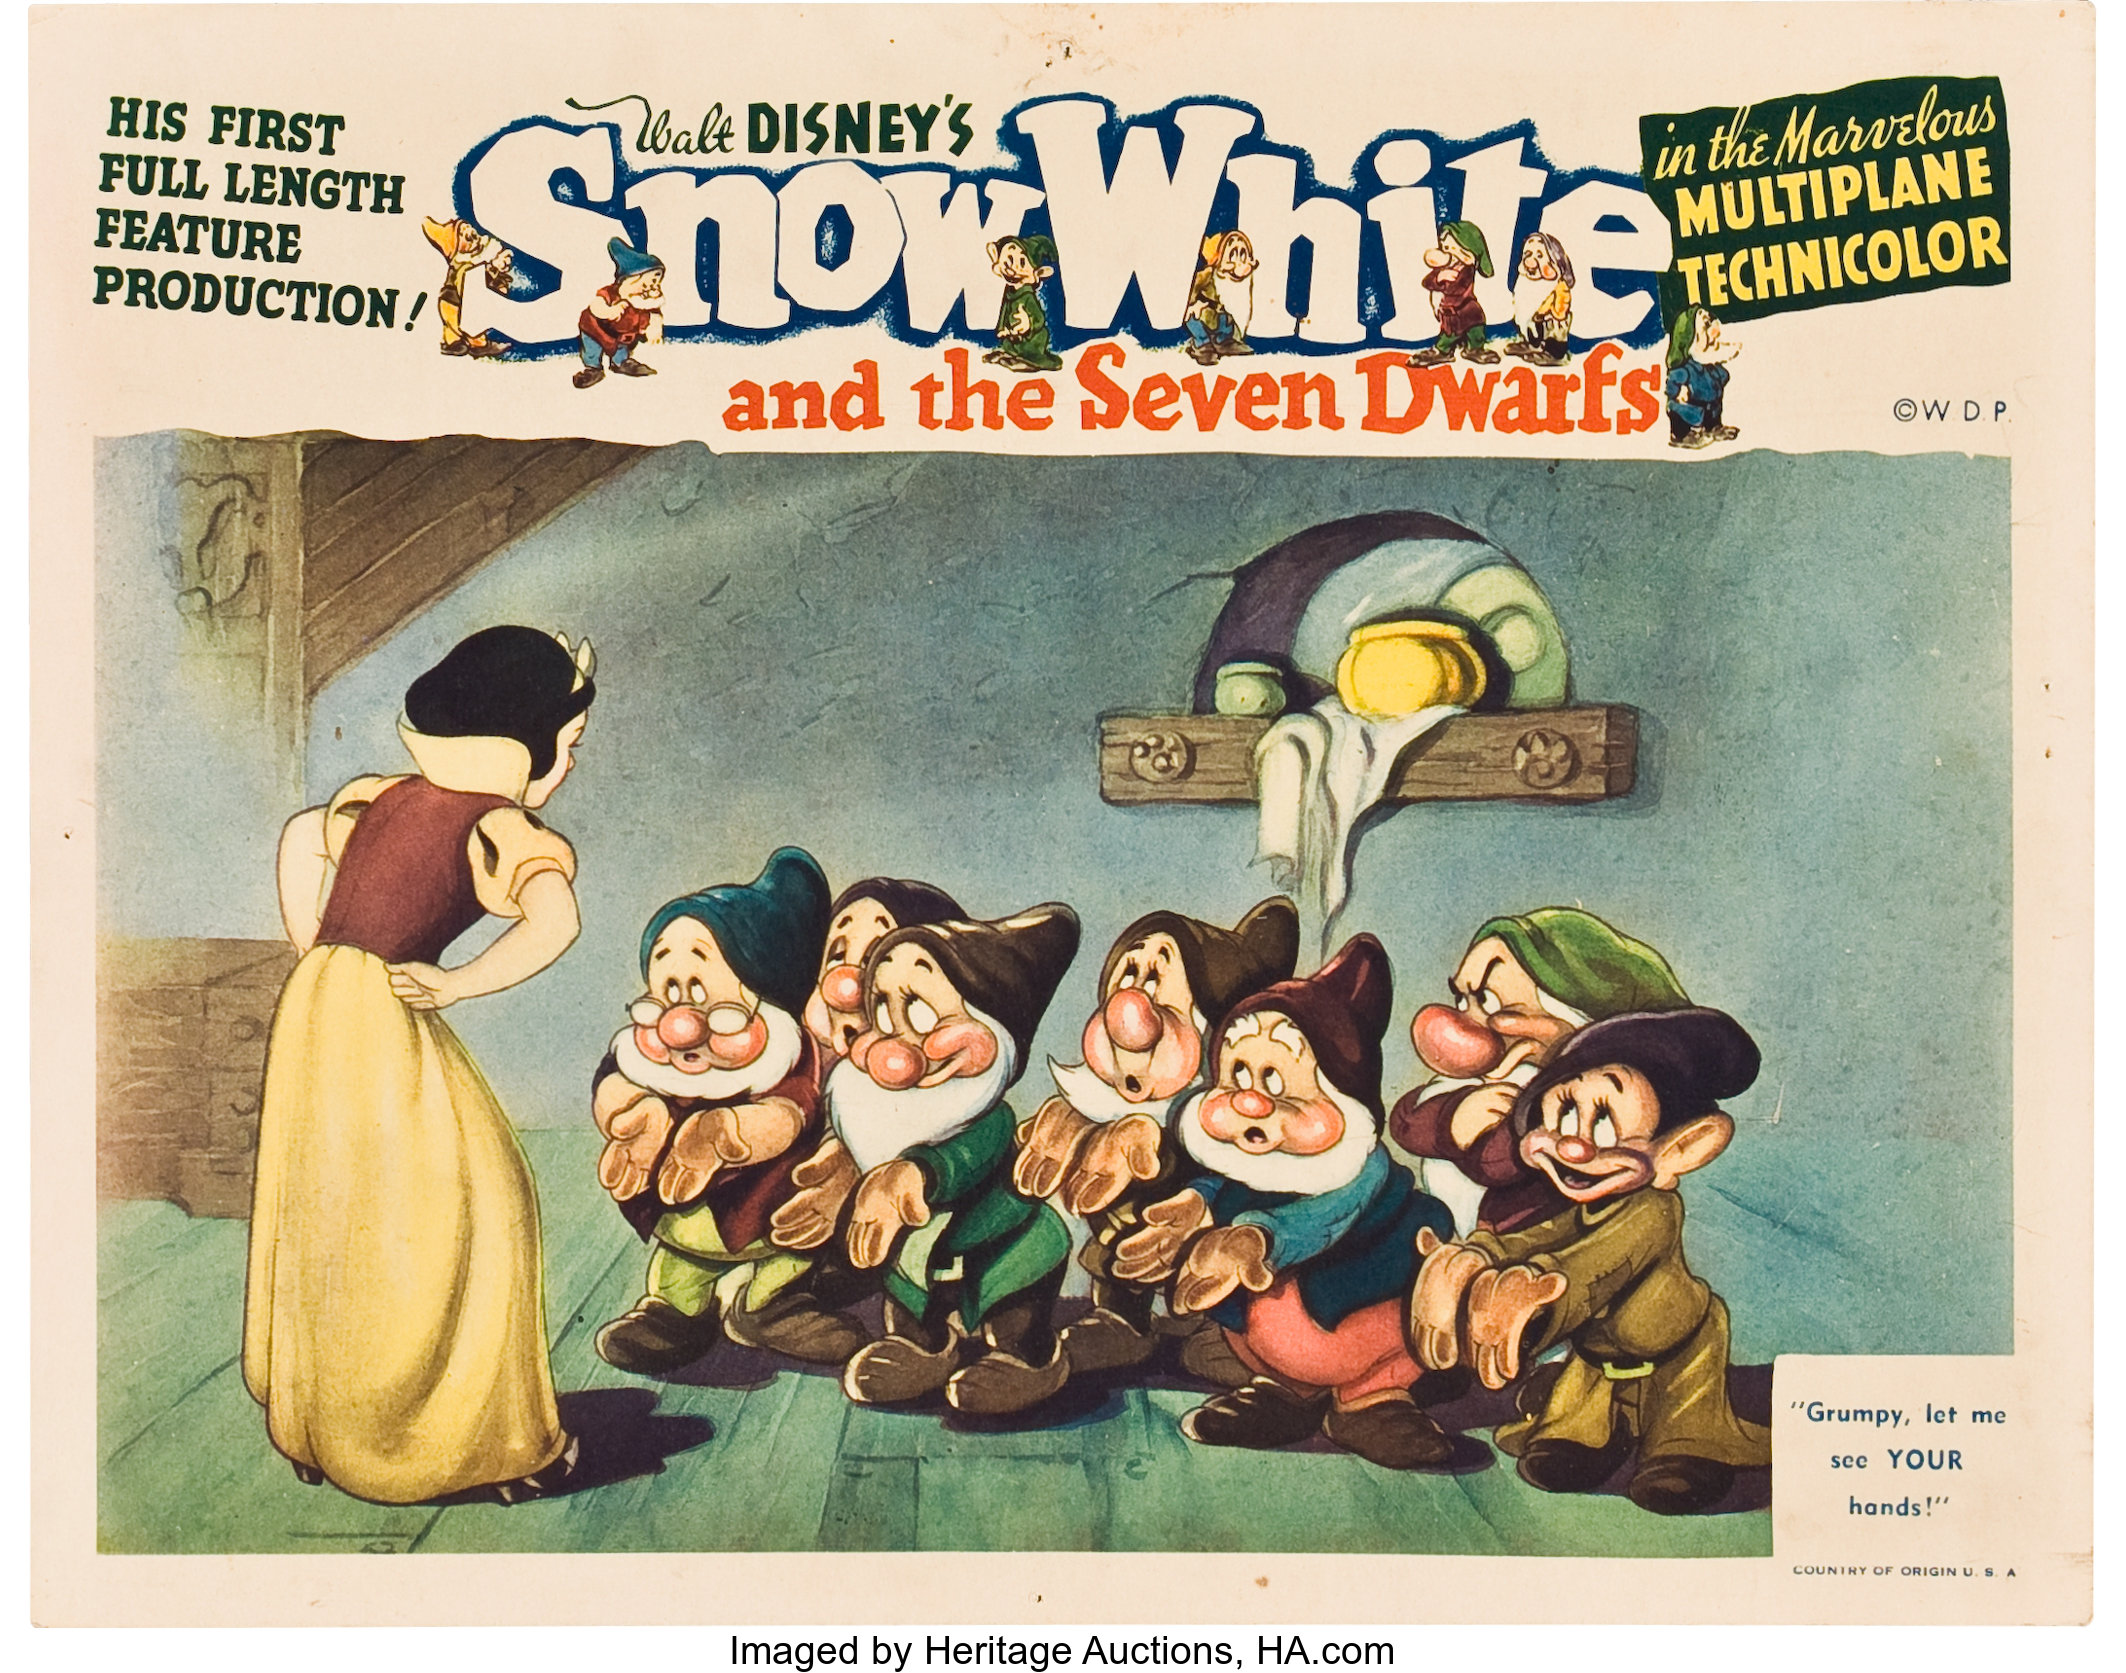 Snow White And The Seven Dwarfs Rko 1937 Lobby Card 11 X Lot 89640 Heritage Auctions